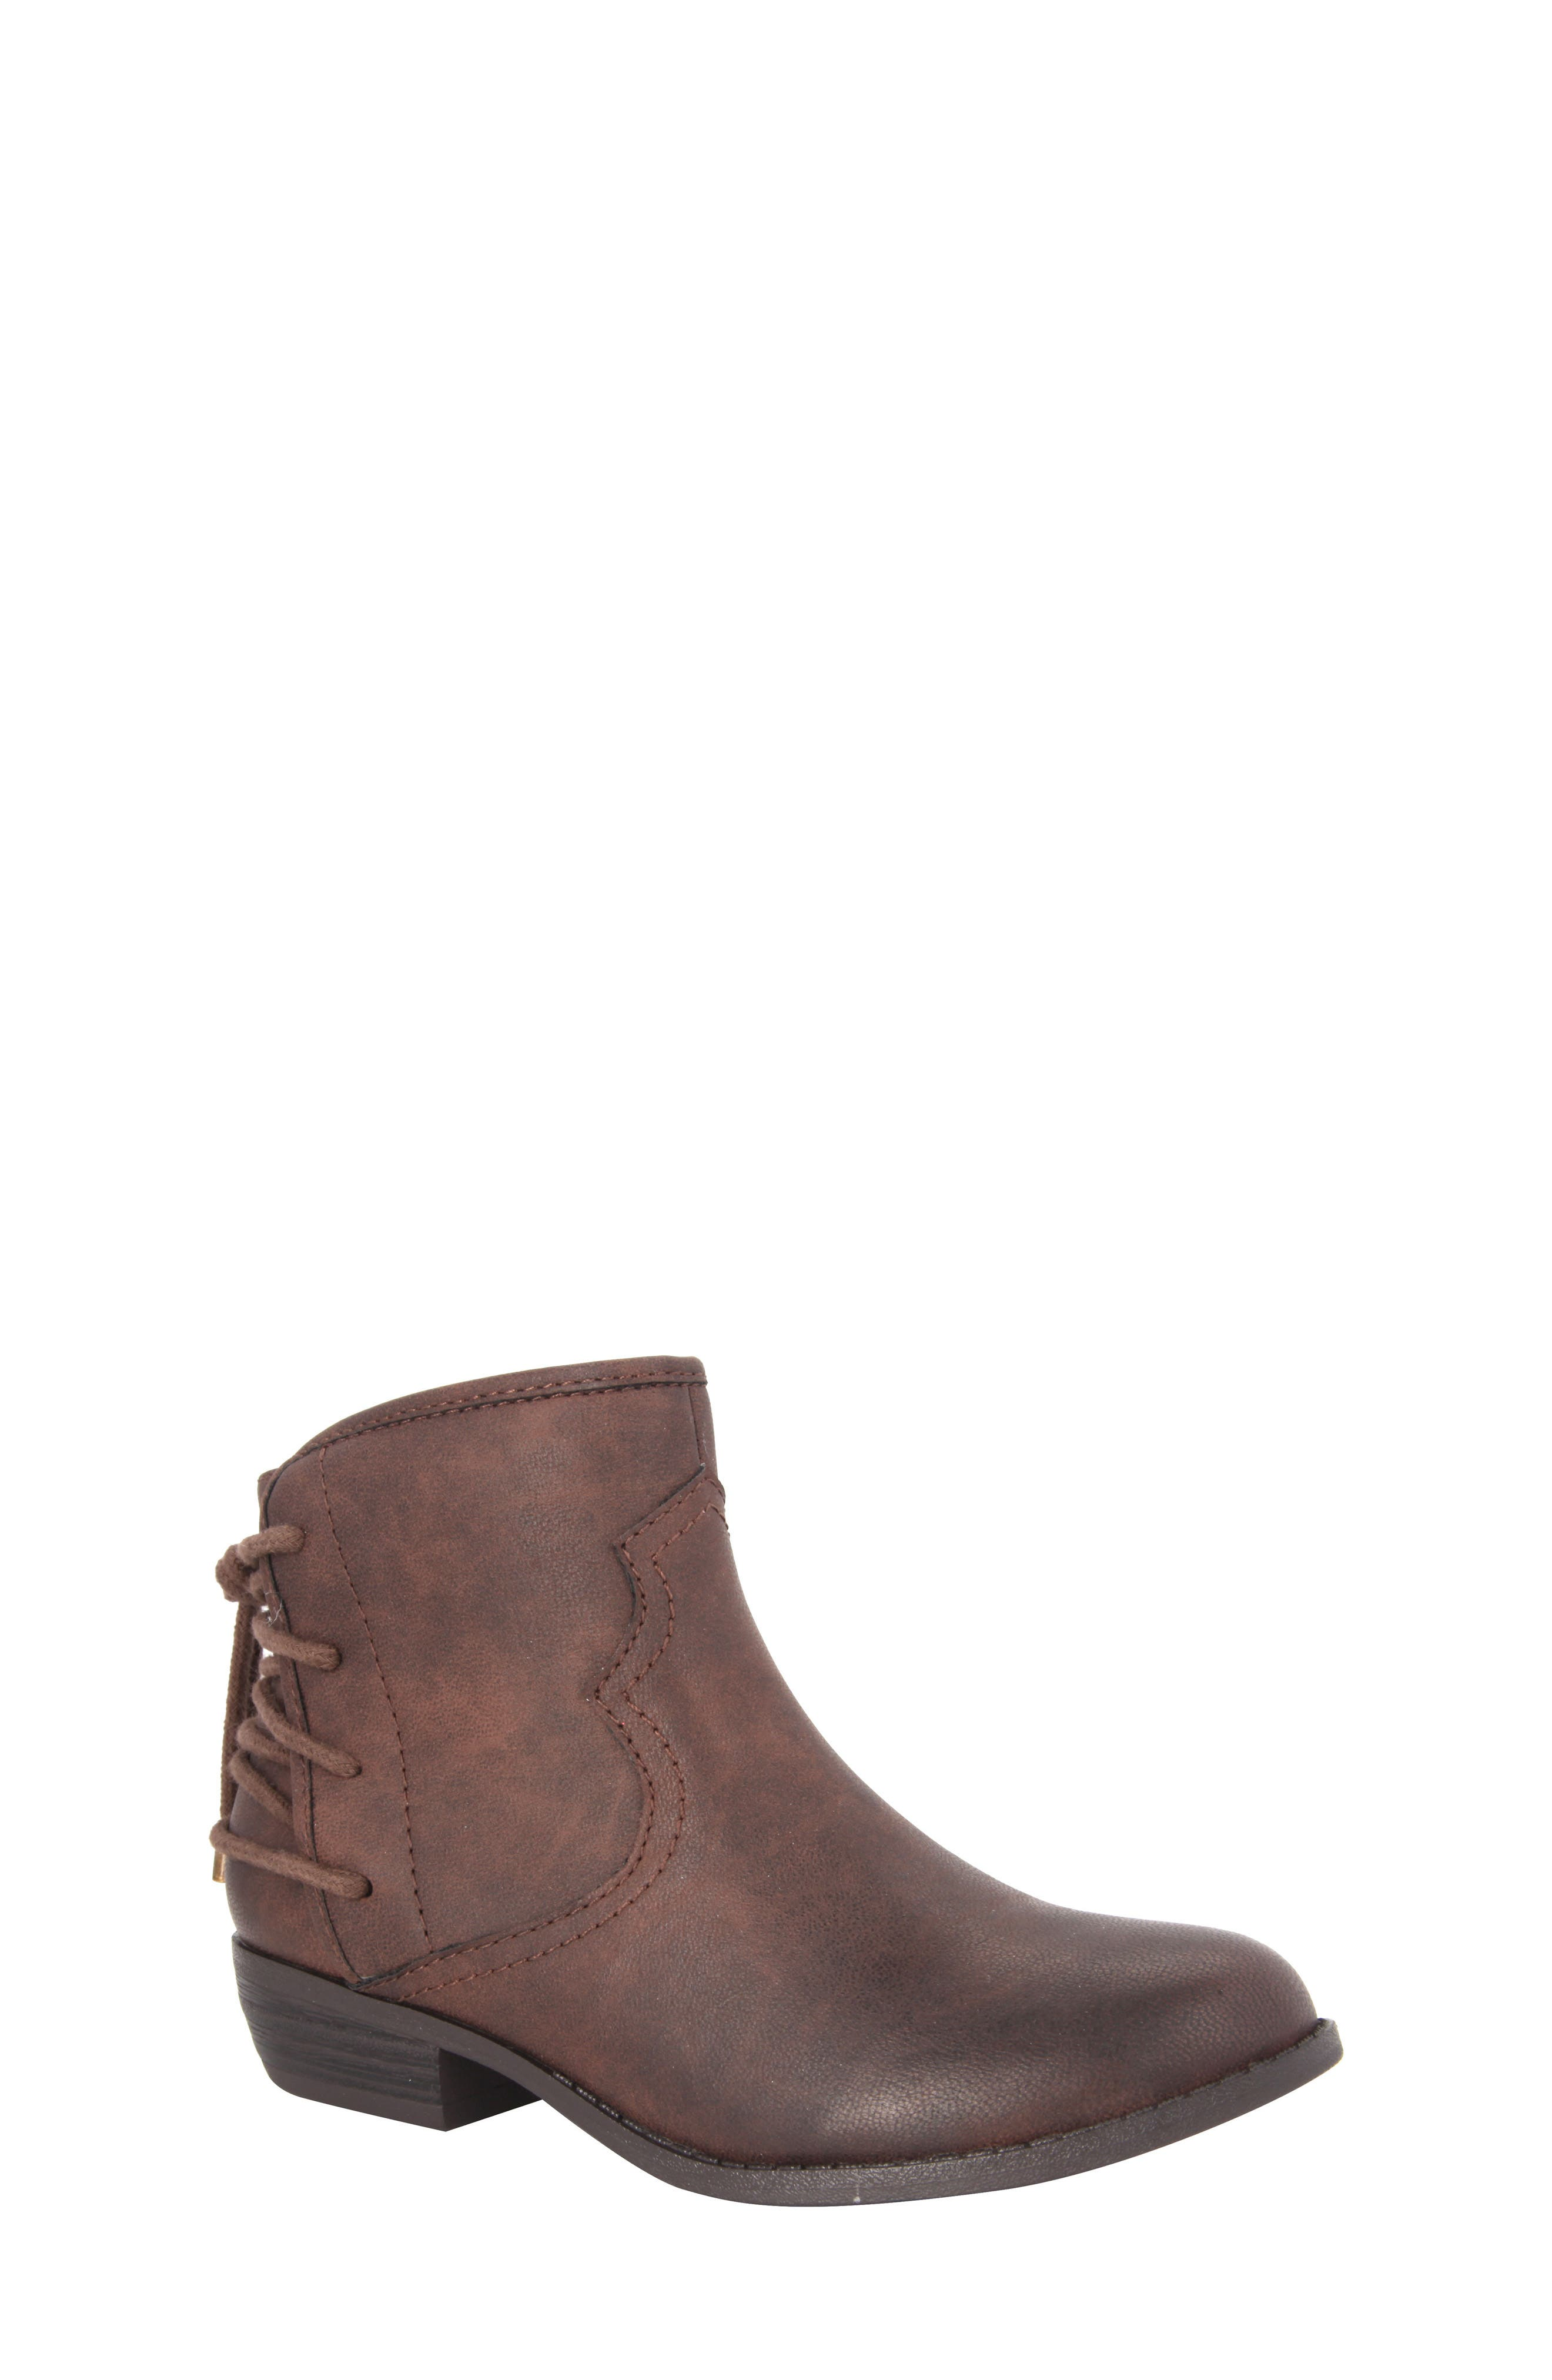 Evette Distressed Back-Lace Bootie,                             Main thumbnail 1, color,                             Brown Faux Leather